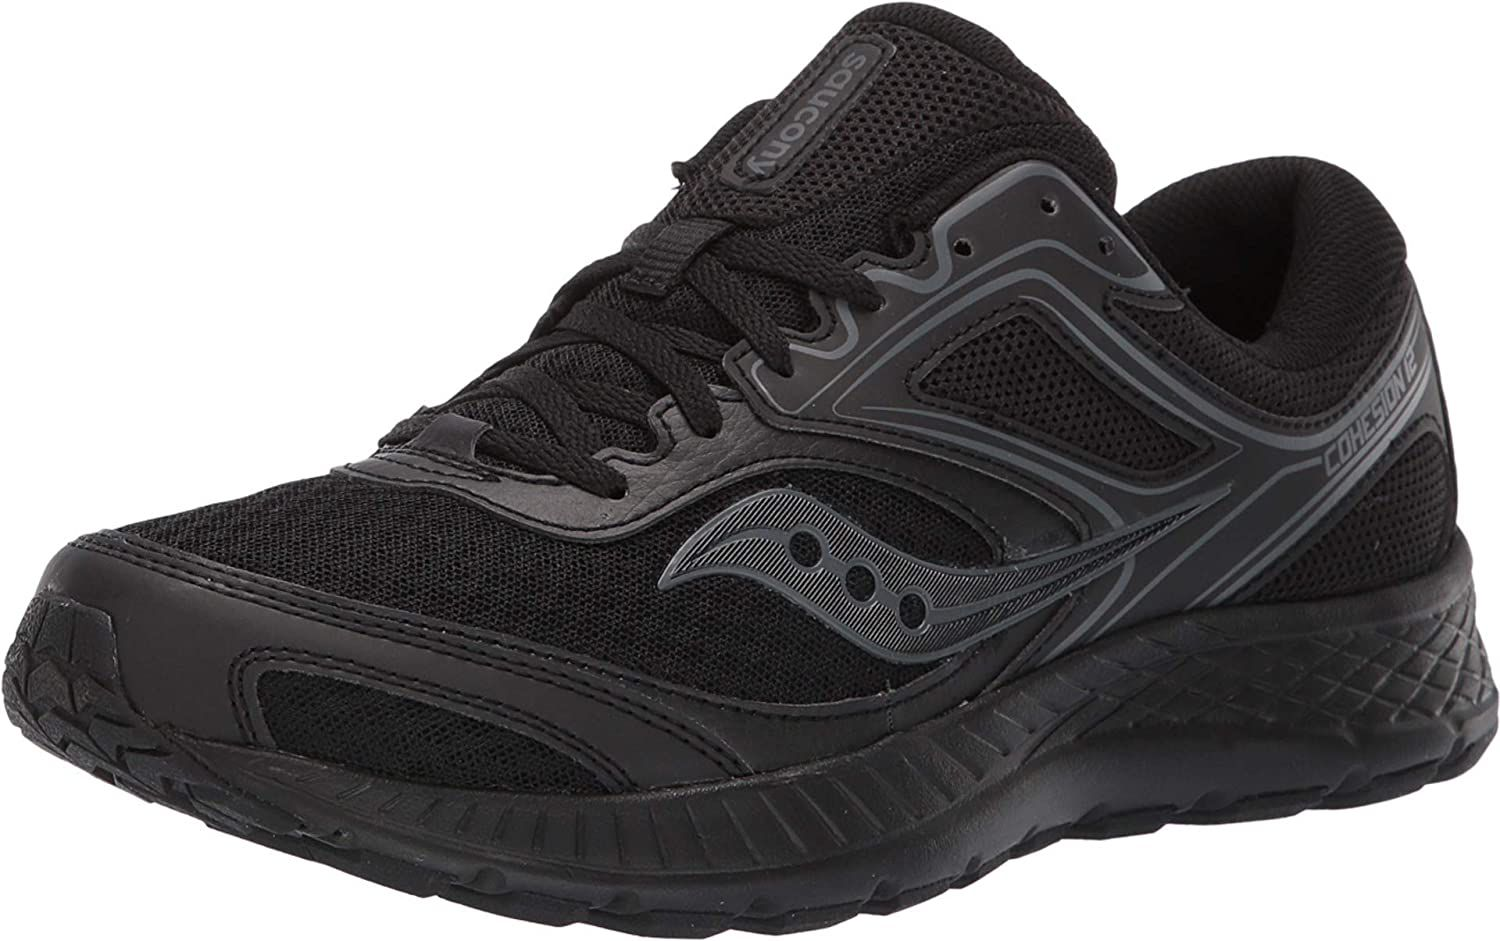 Saucony Cohesion Road Running Shoe